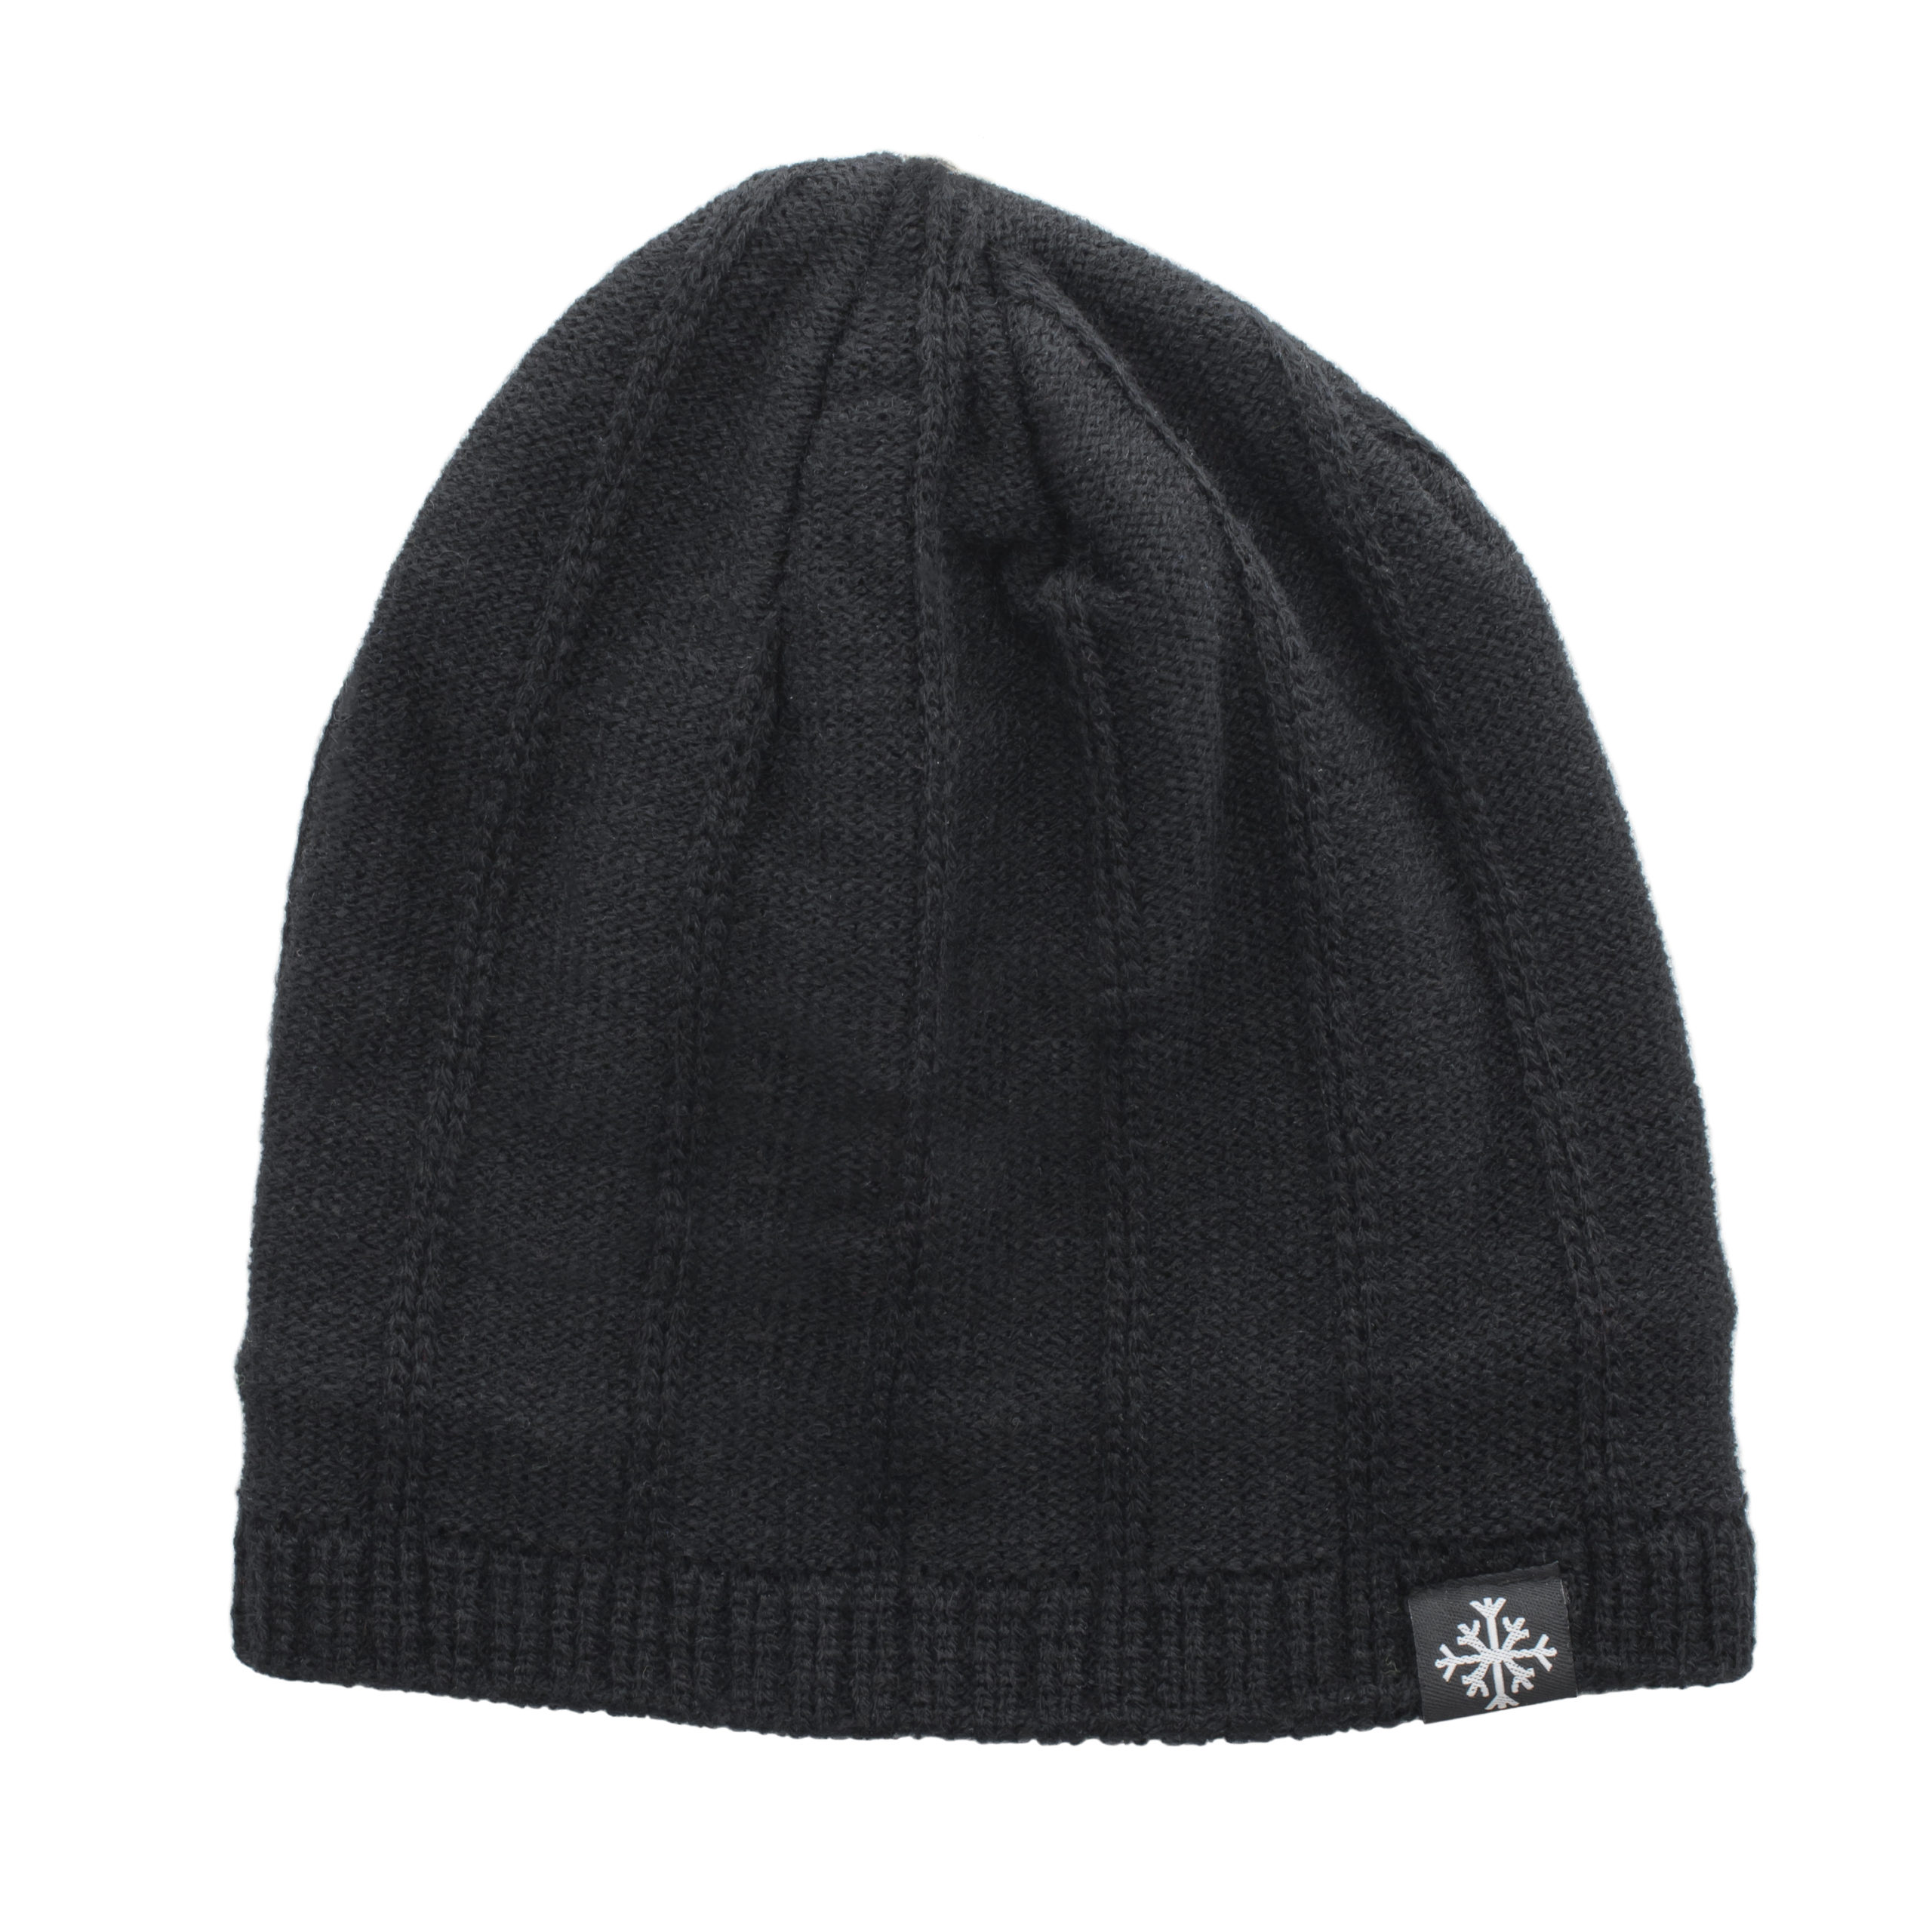 MEN'S LIGHT COTTON BEANIE-BLACK